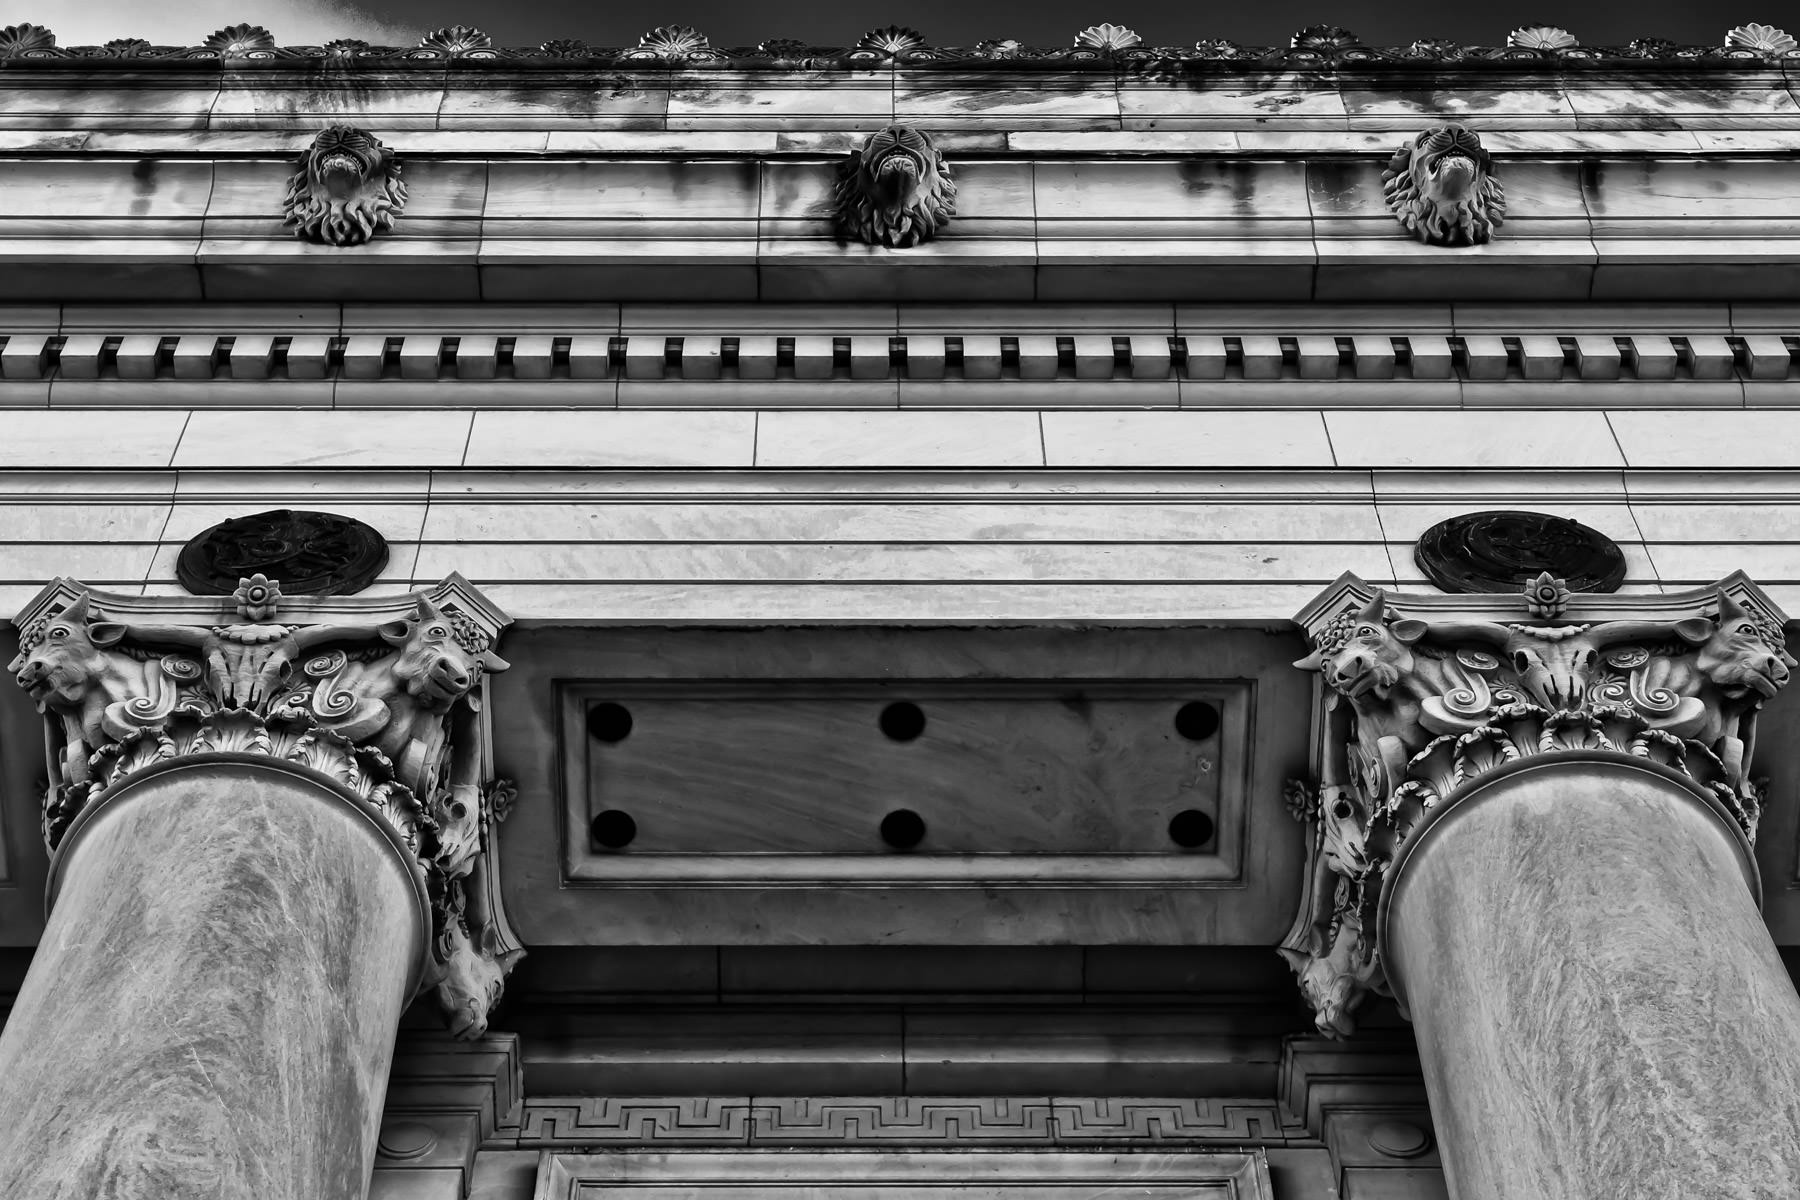 Exterior detail of the main post office in Fort Worth Texas, featuring lion heads along the frieze and various cow heads at the tops of the columns.